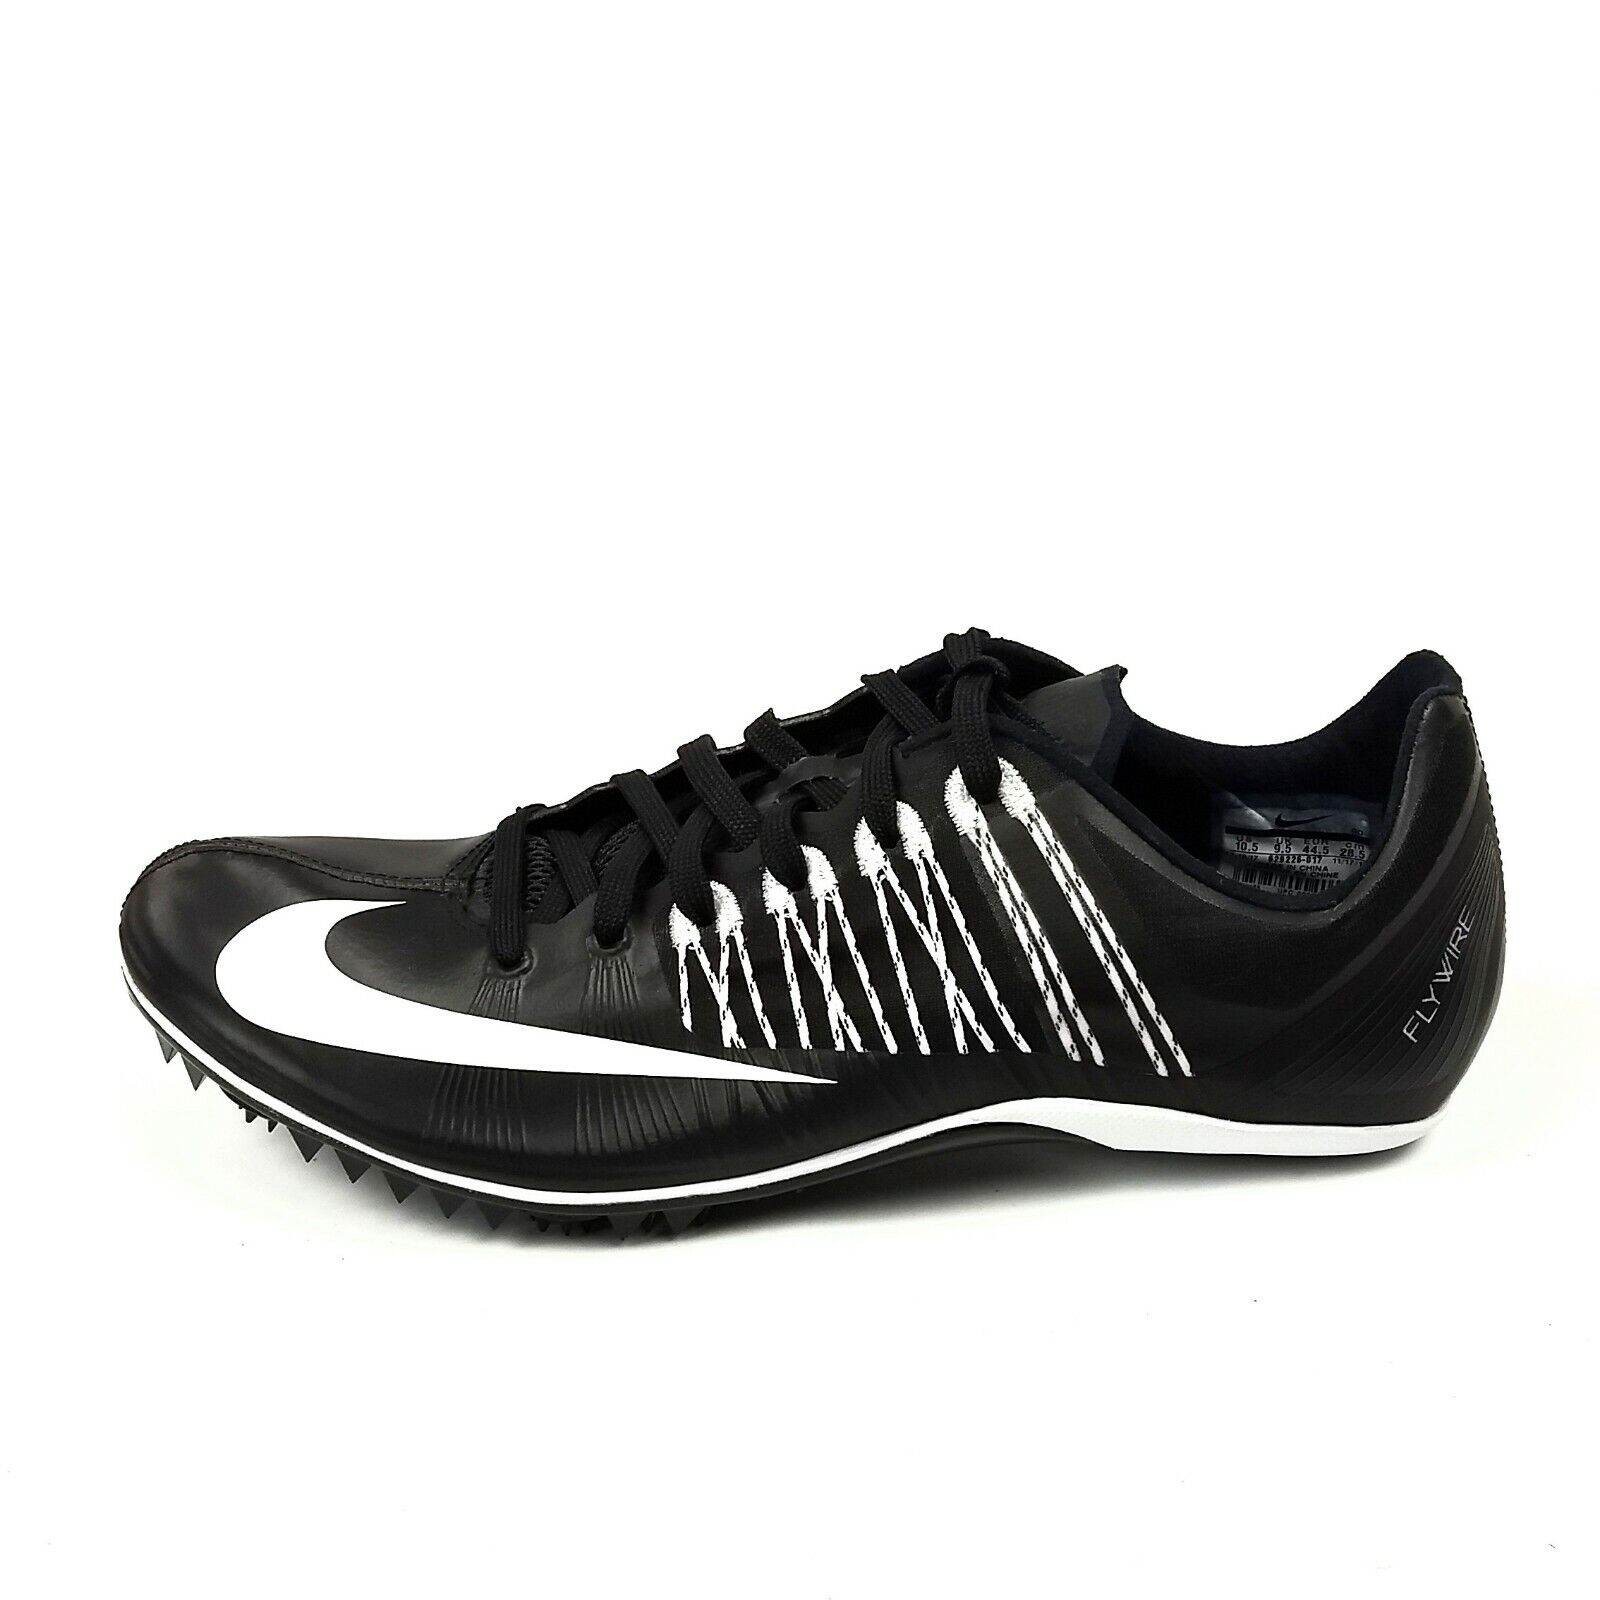 Nike Zoom Celar 5 Track Field Spikes shoes Mens Size 10.5 Black White 629226-017